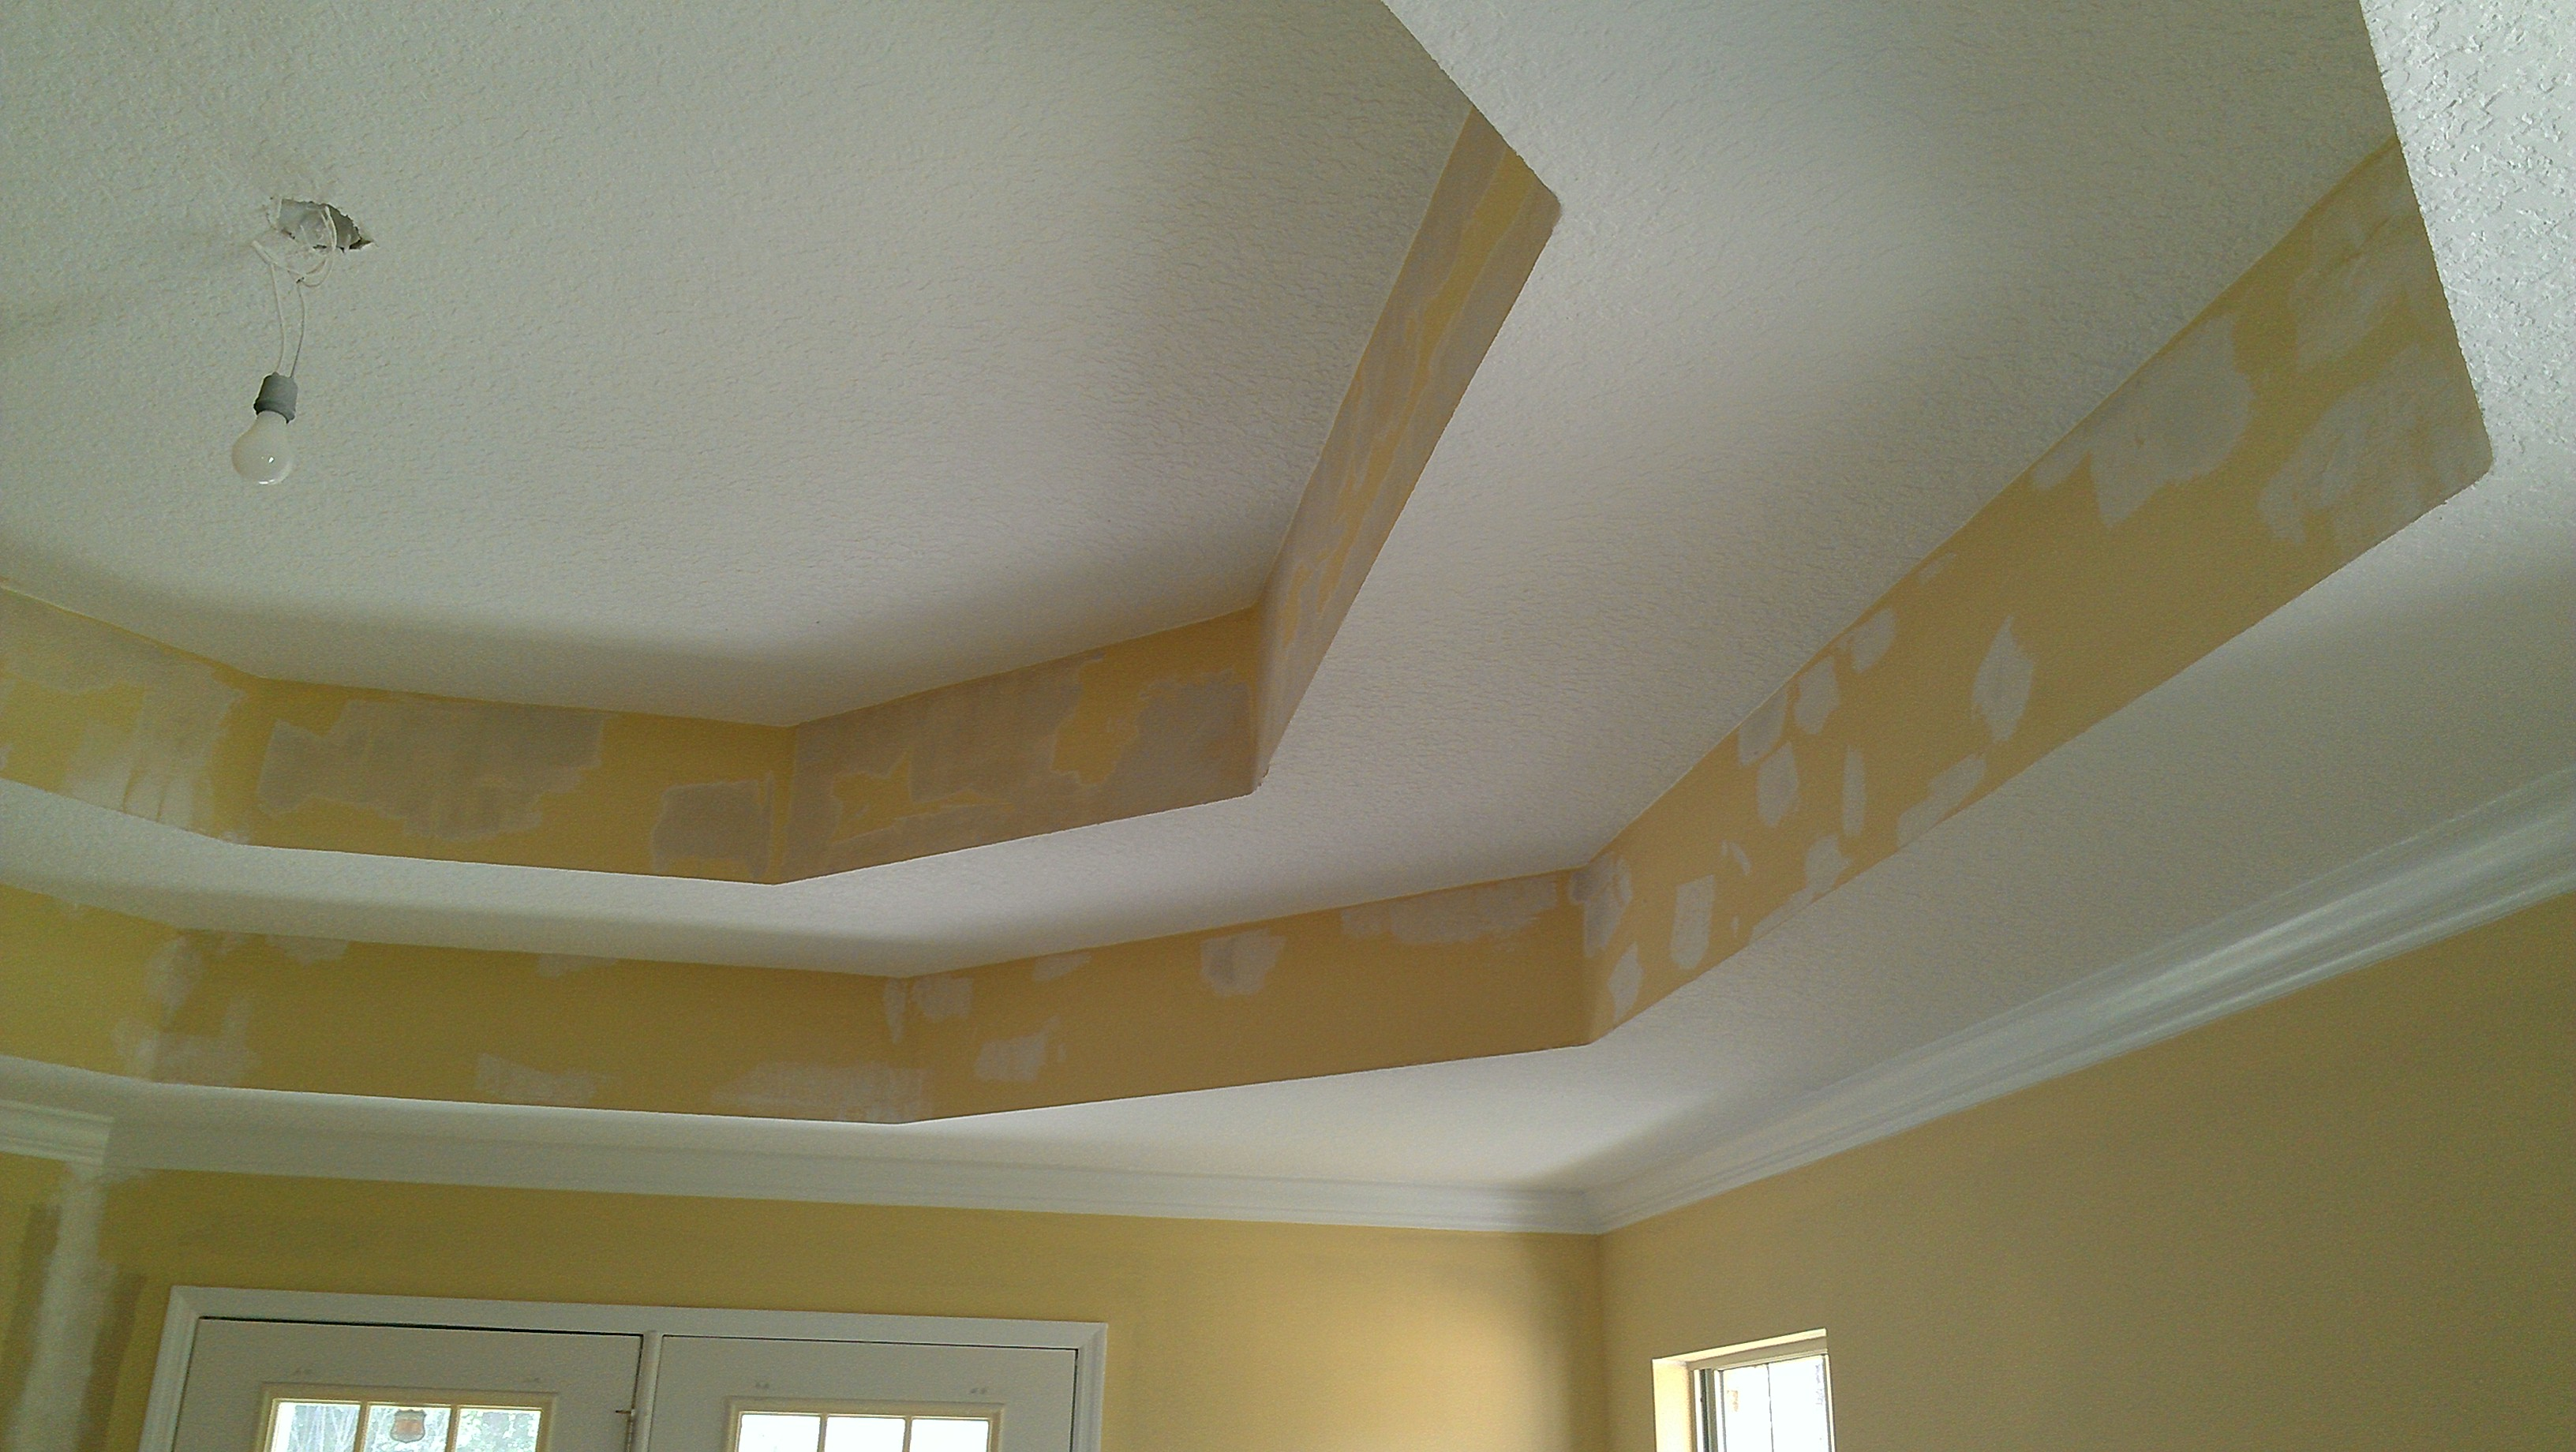 Ceiling Contractor In Jacksonville Drywall And Popcorn